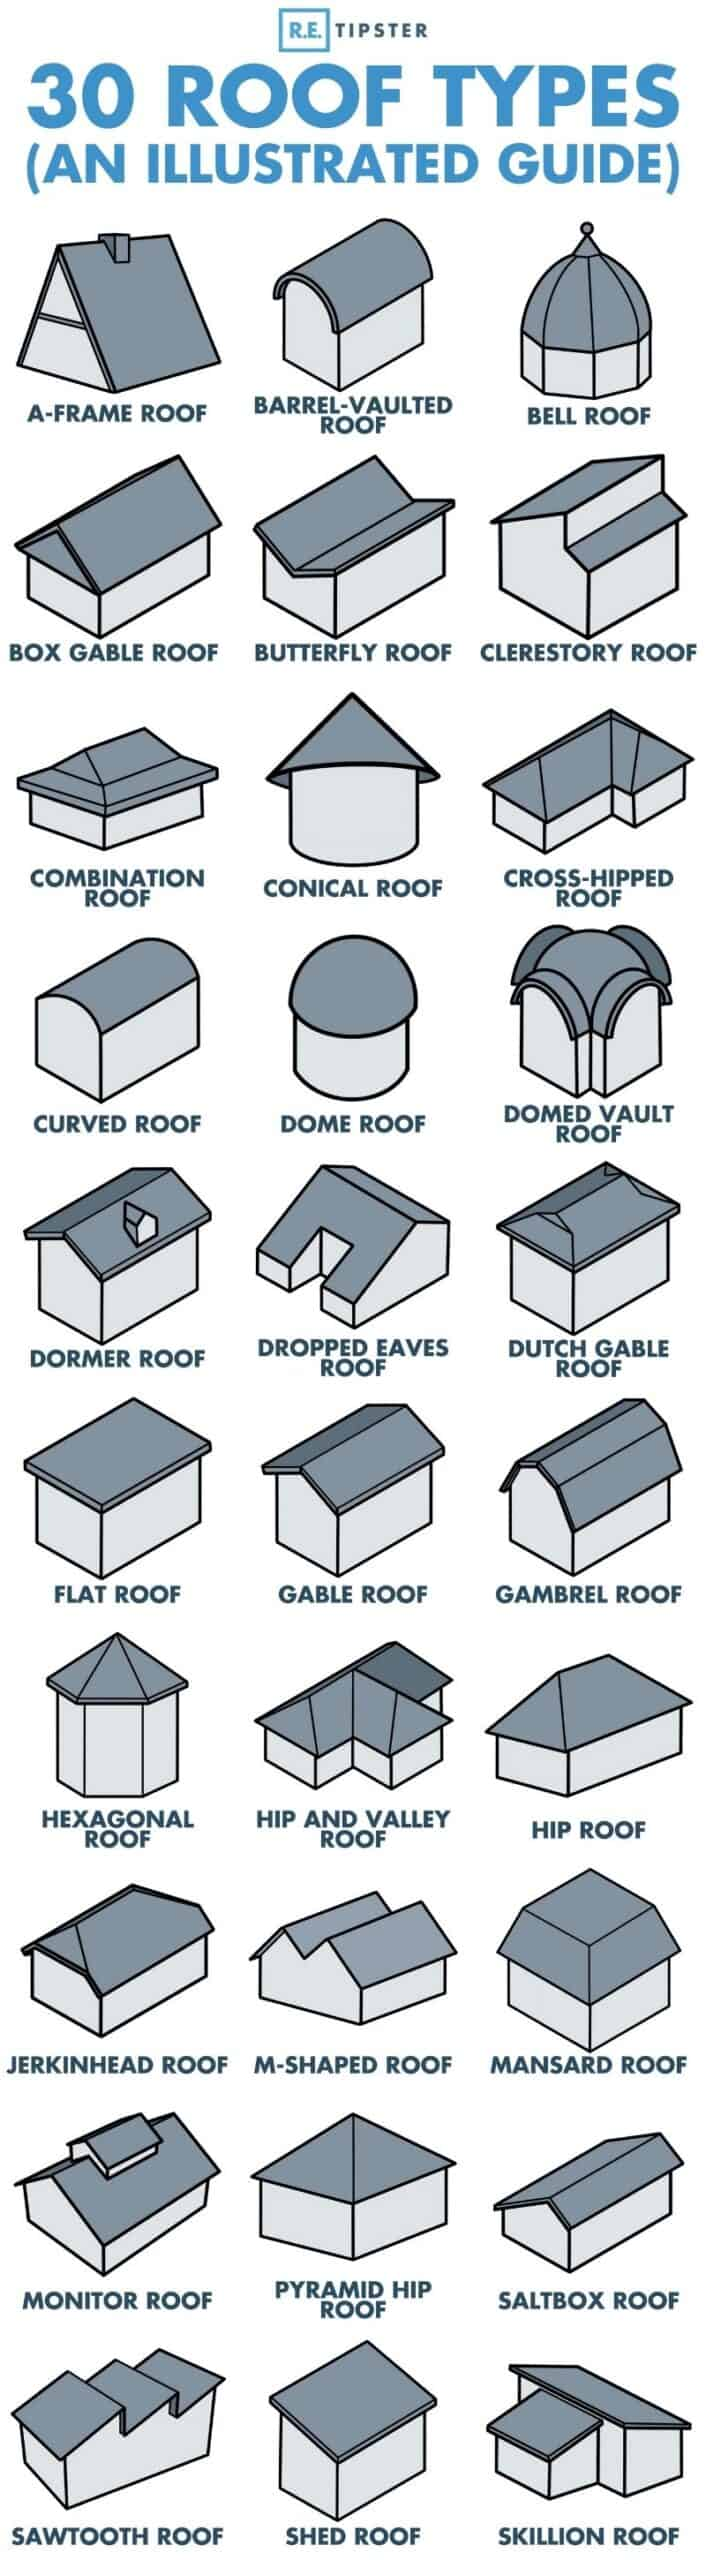 30 Roof Types and Styles (A Helpful Illustrated Guide)